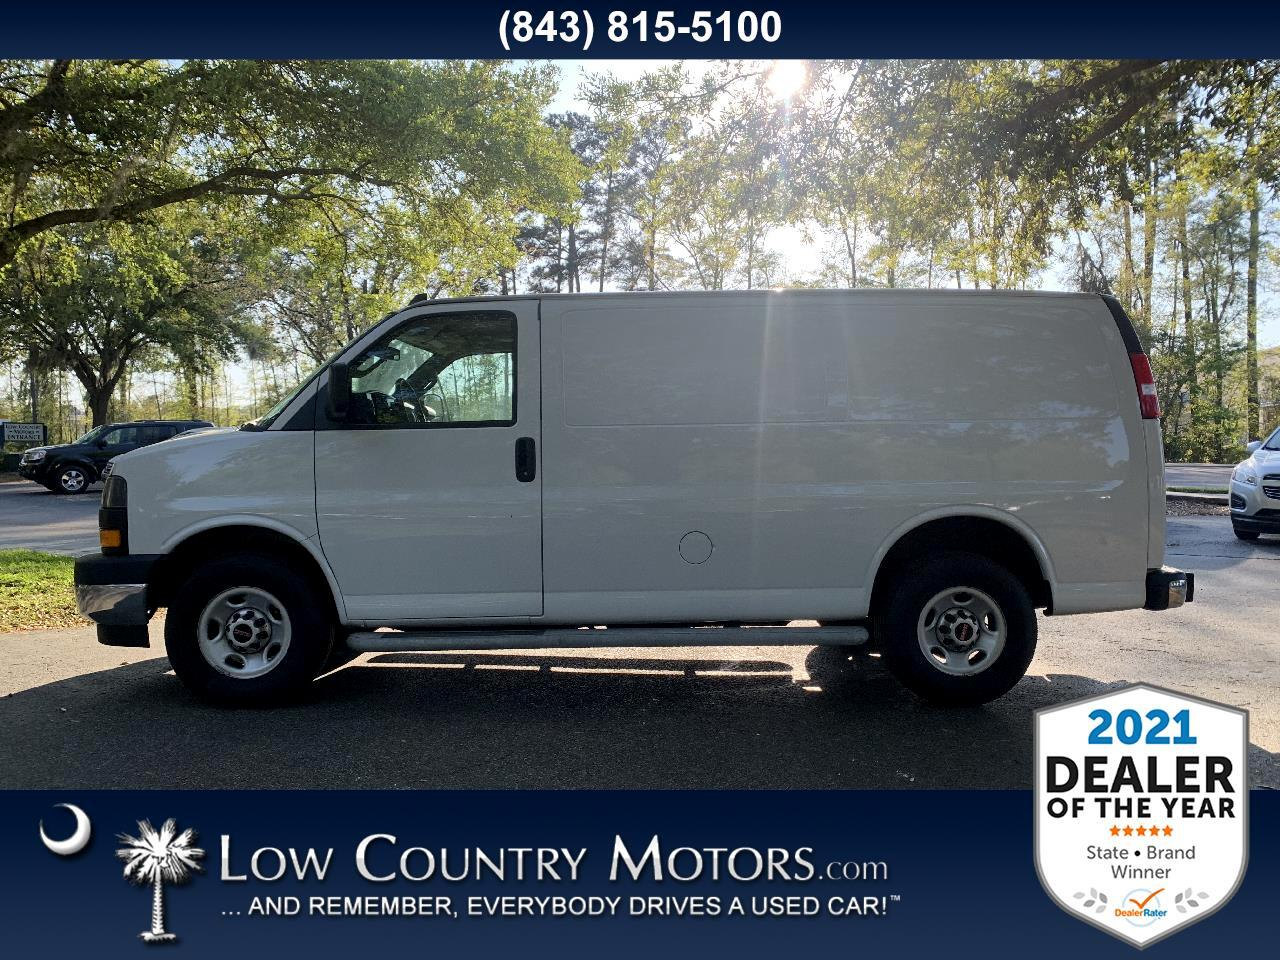 used 2019 GMC Savana Cargo Van car, priced at $30,997